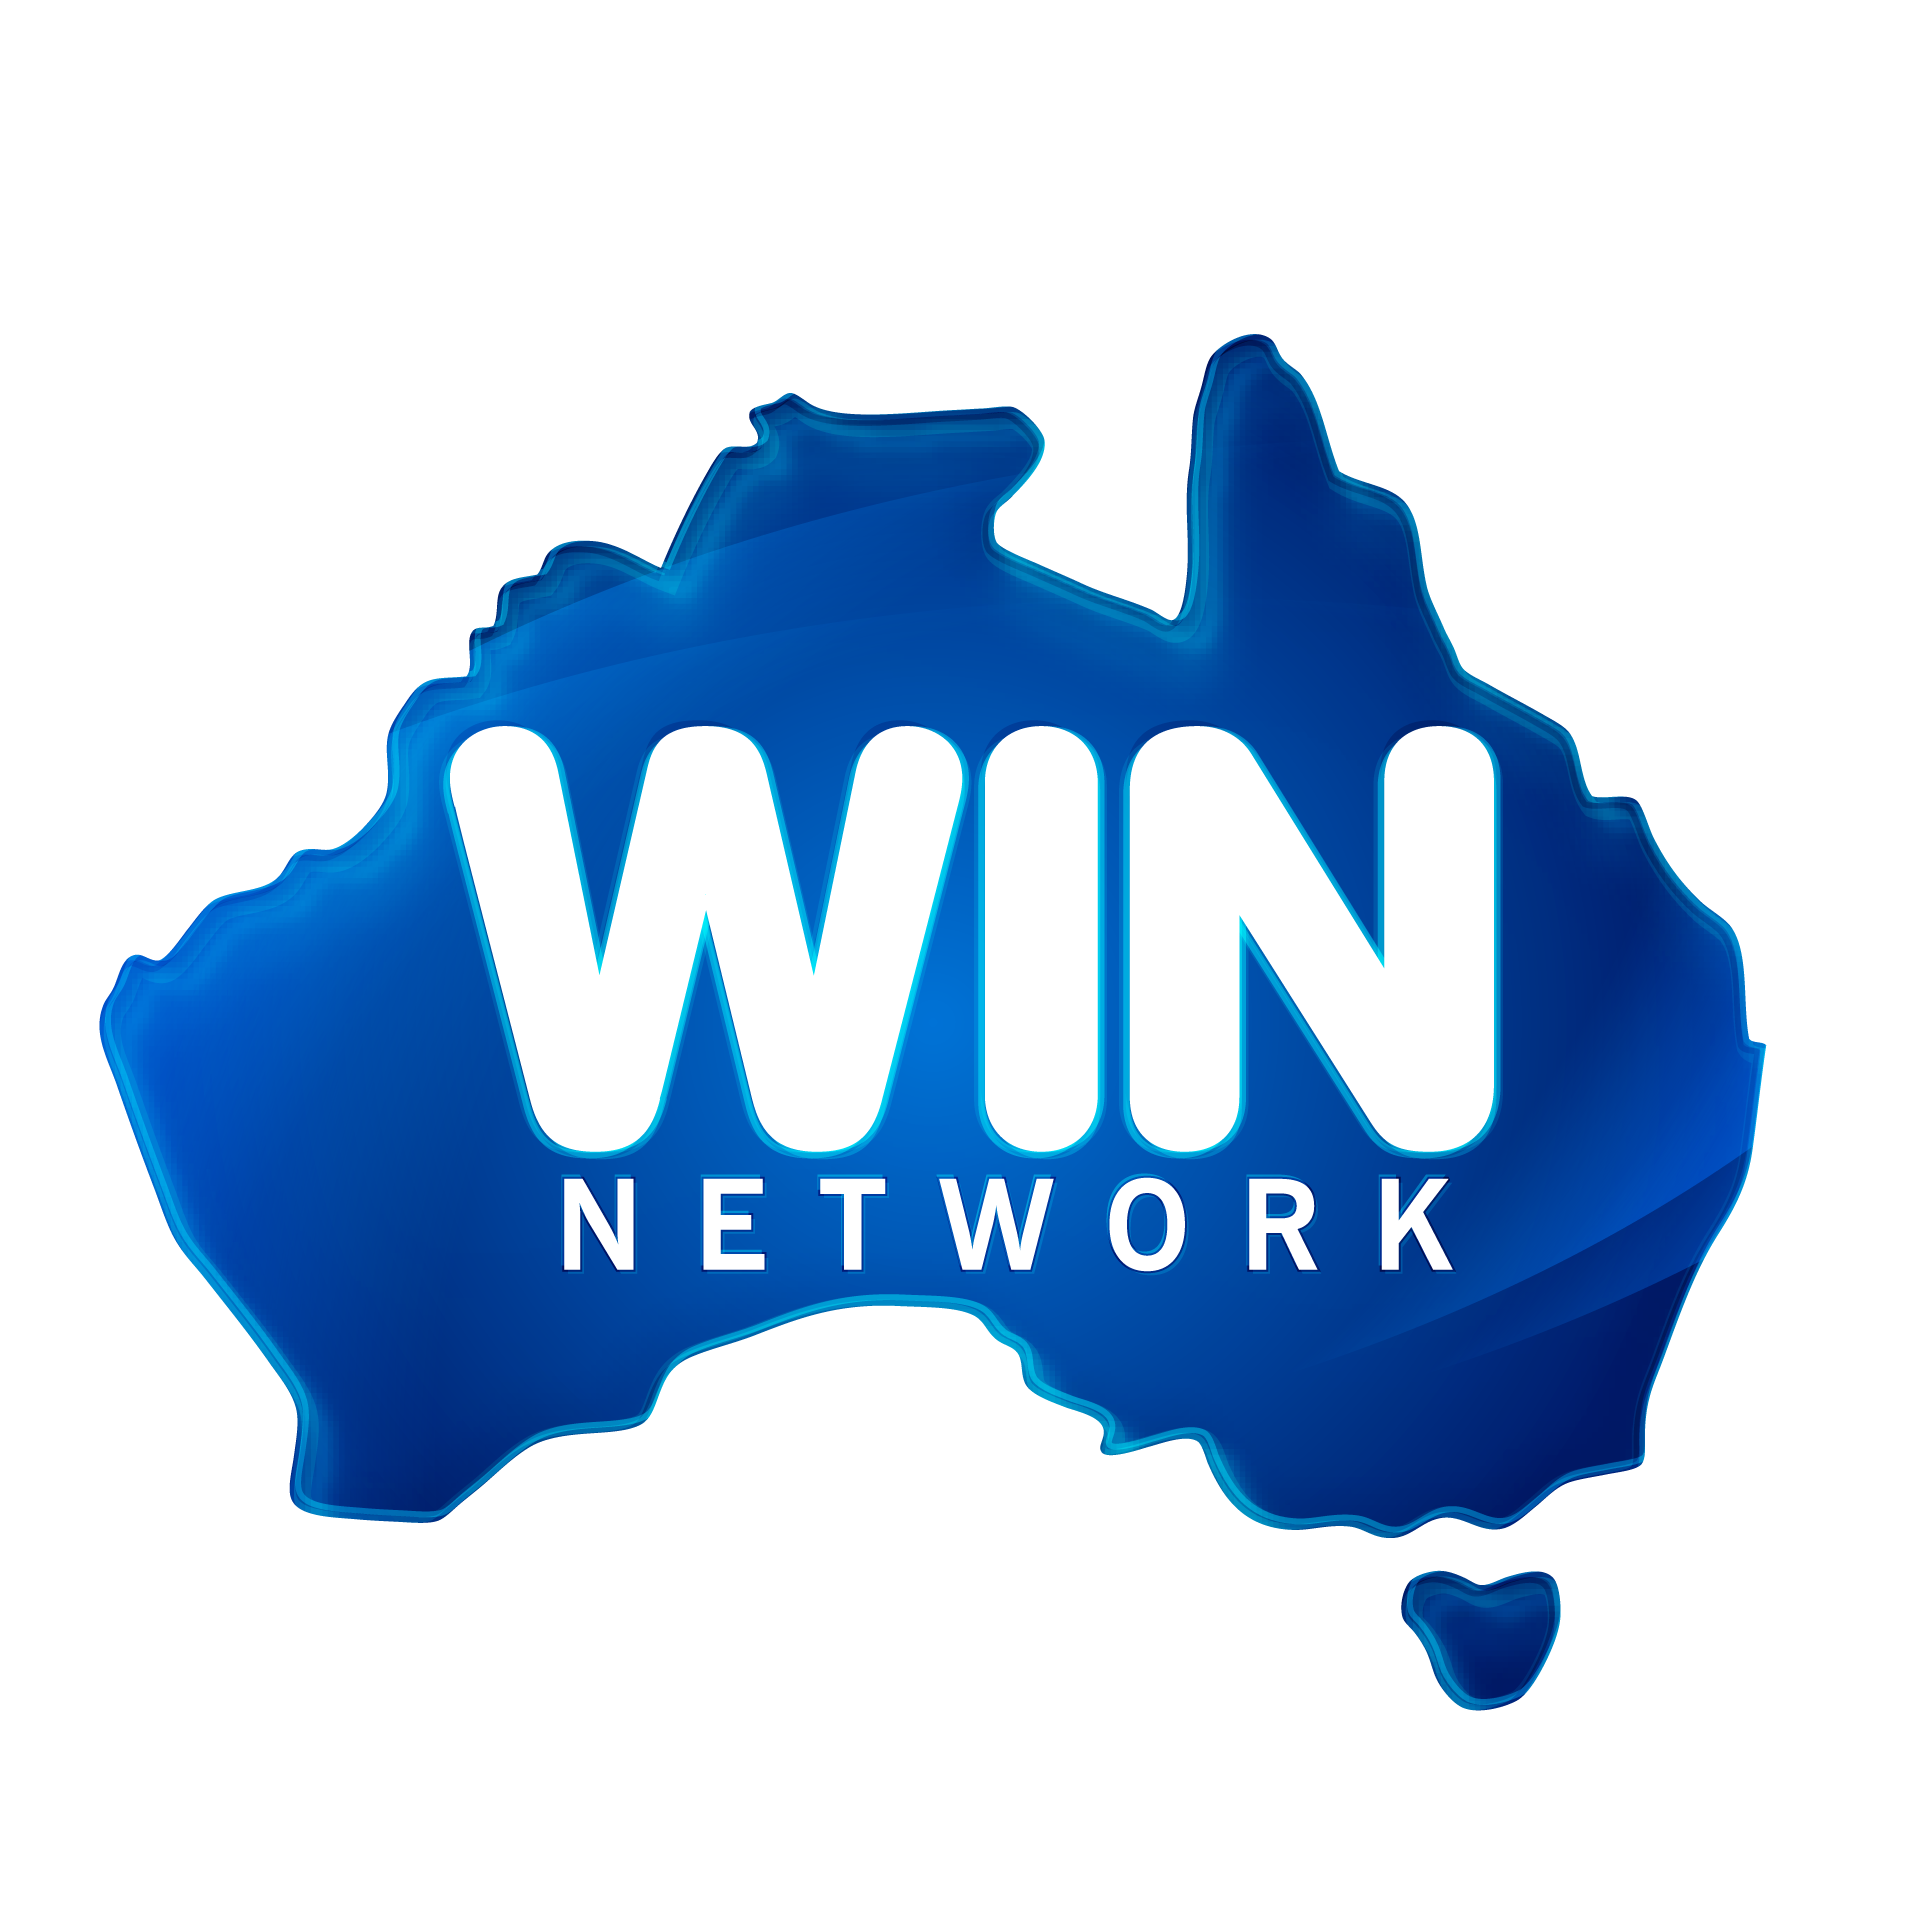 winnetworklogo_styled